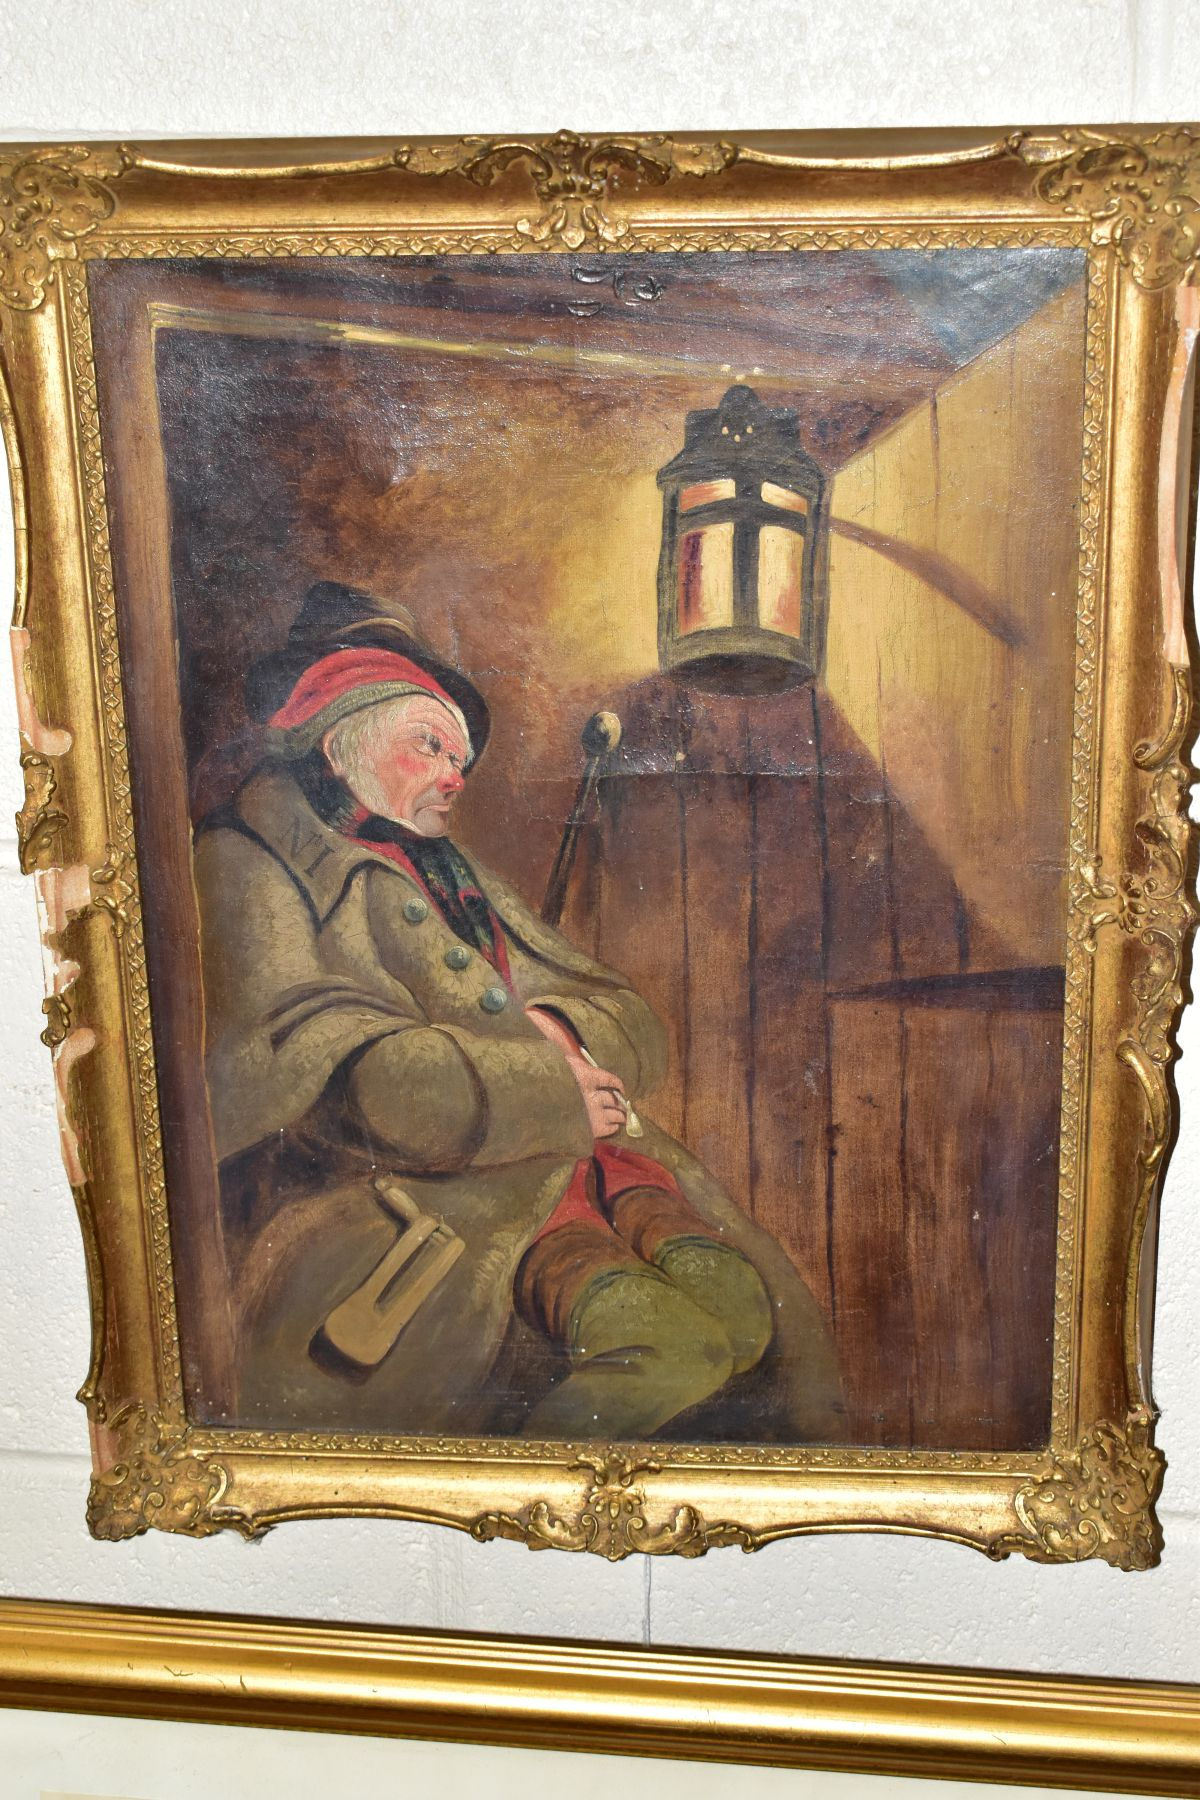 PAINTINGS AND PRINTS, ETC, to include an unsigned oil on canvas depicting a sleeping night watchman, - Image 2 of 7